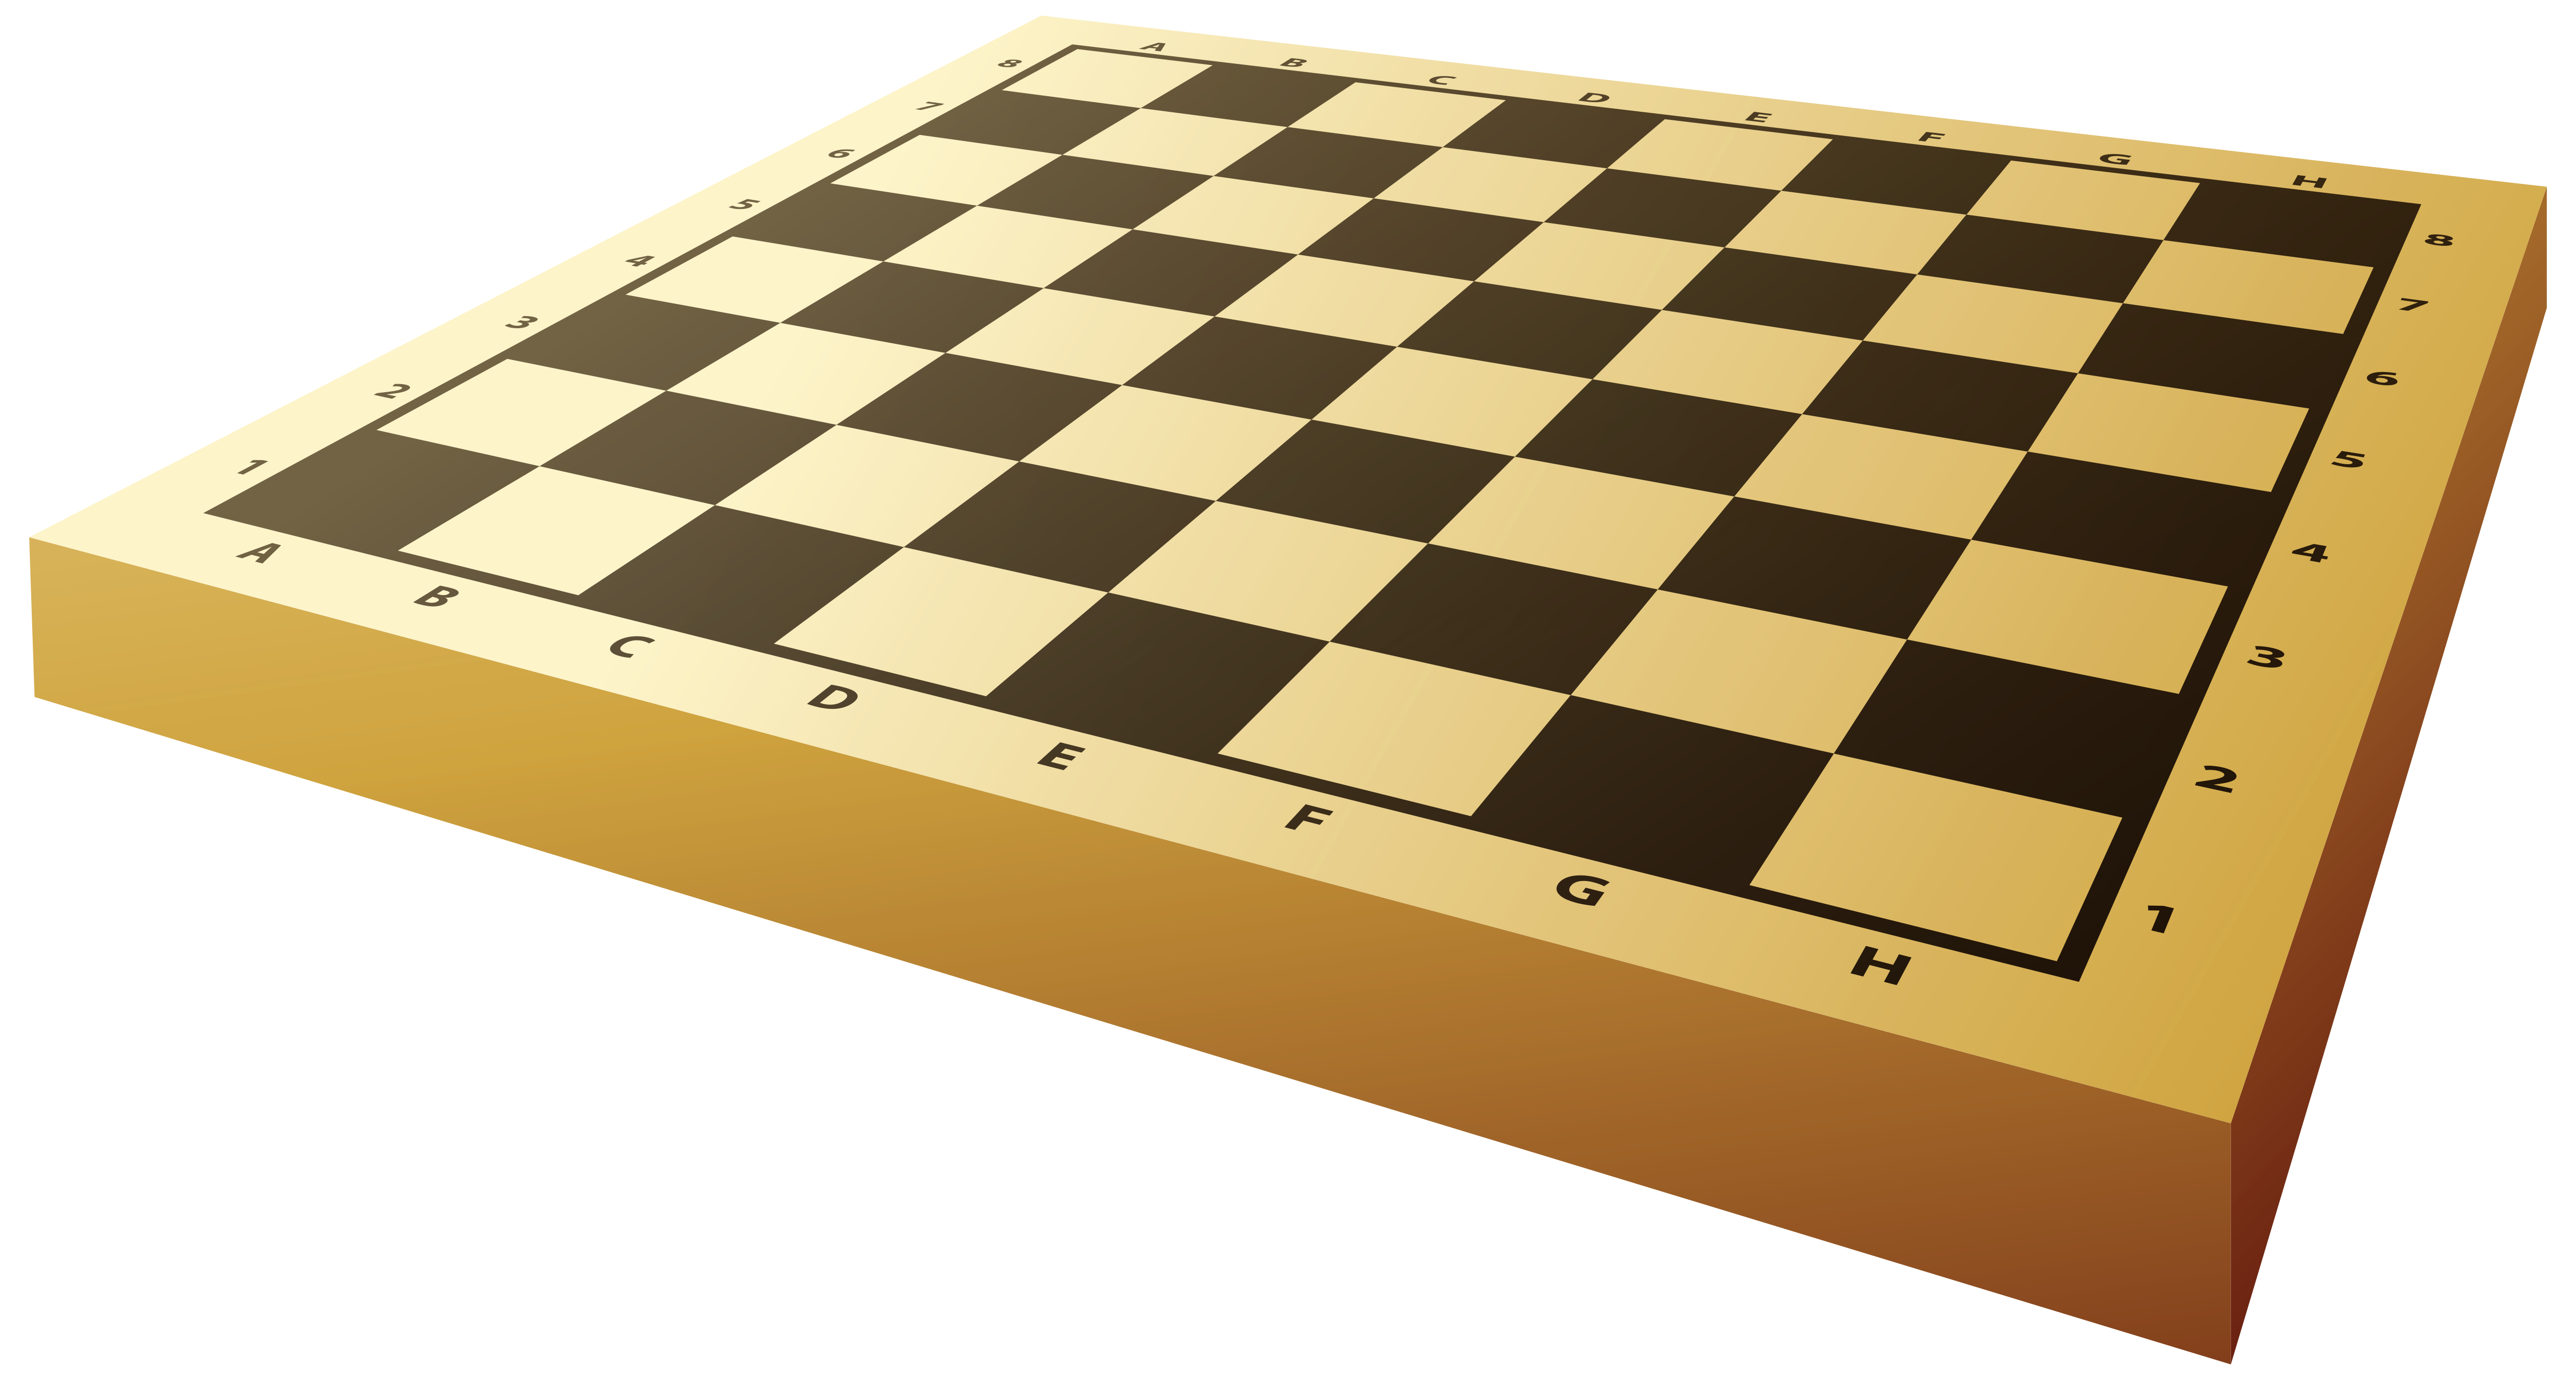 Clipart table empty table. Chessboard png best web